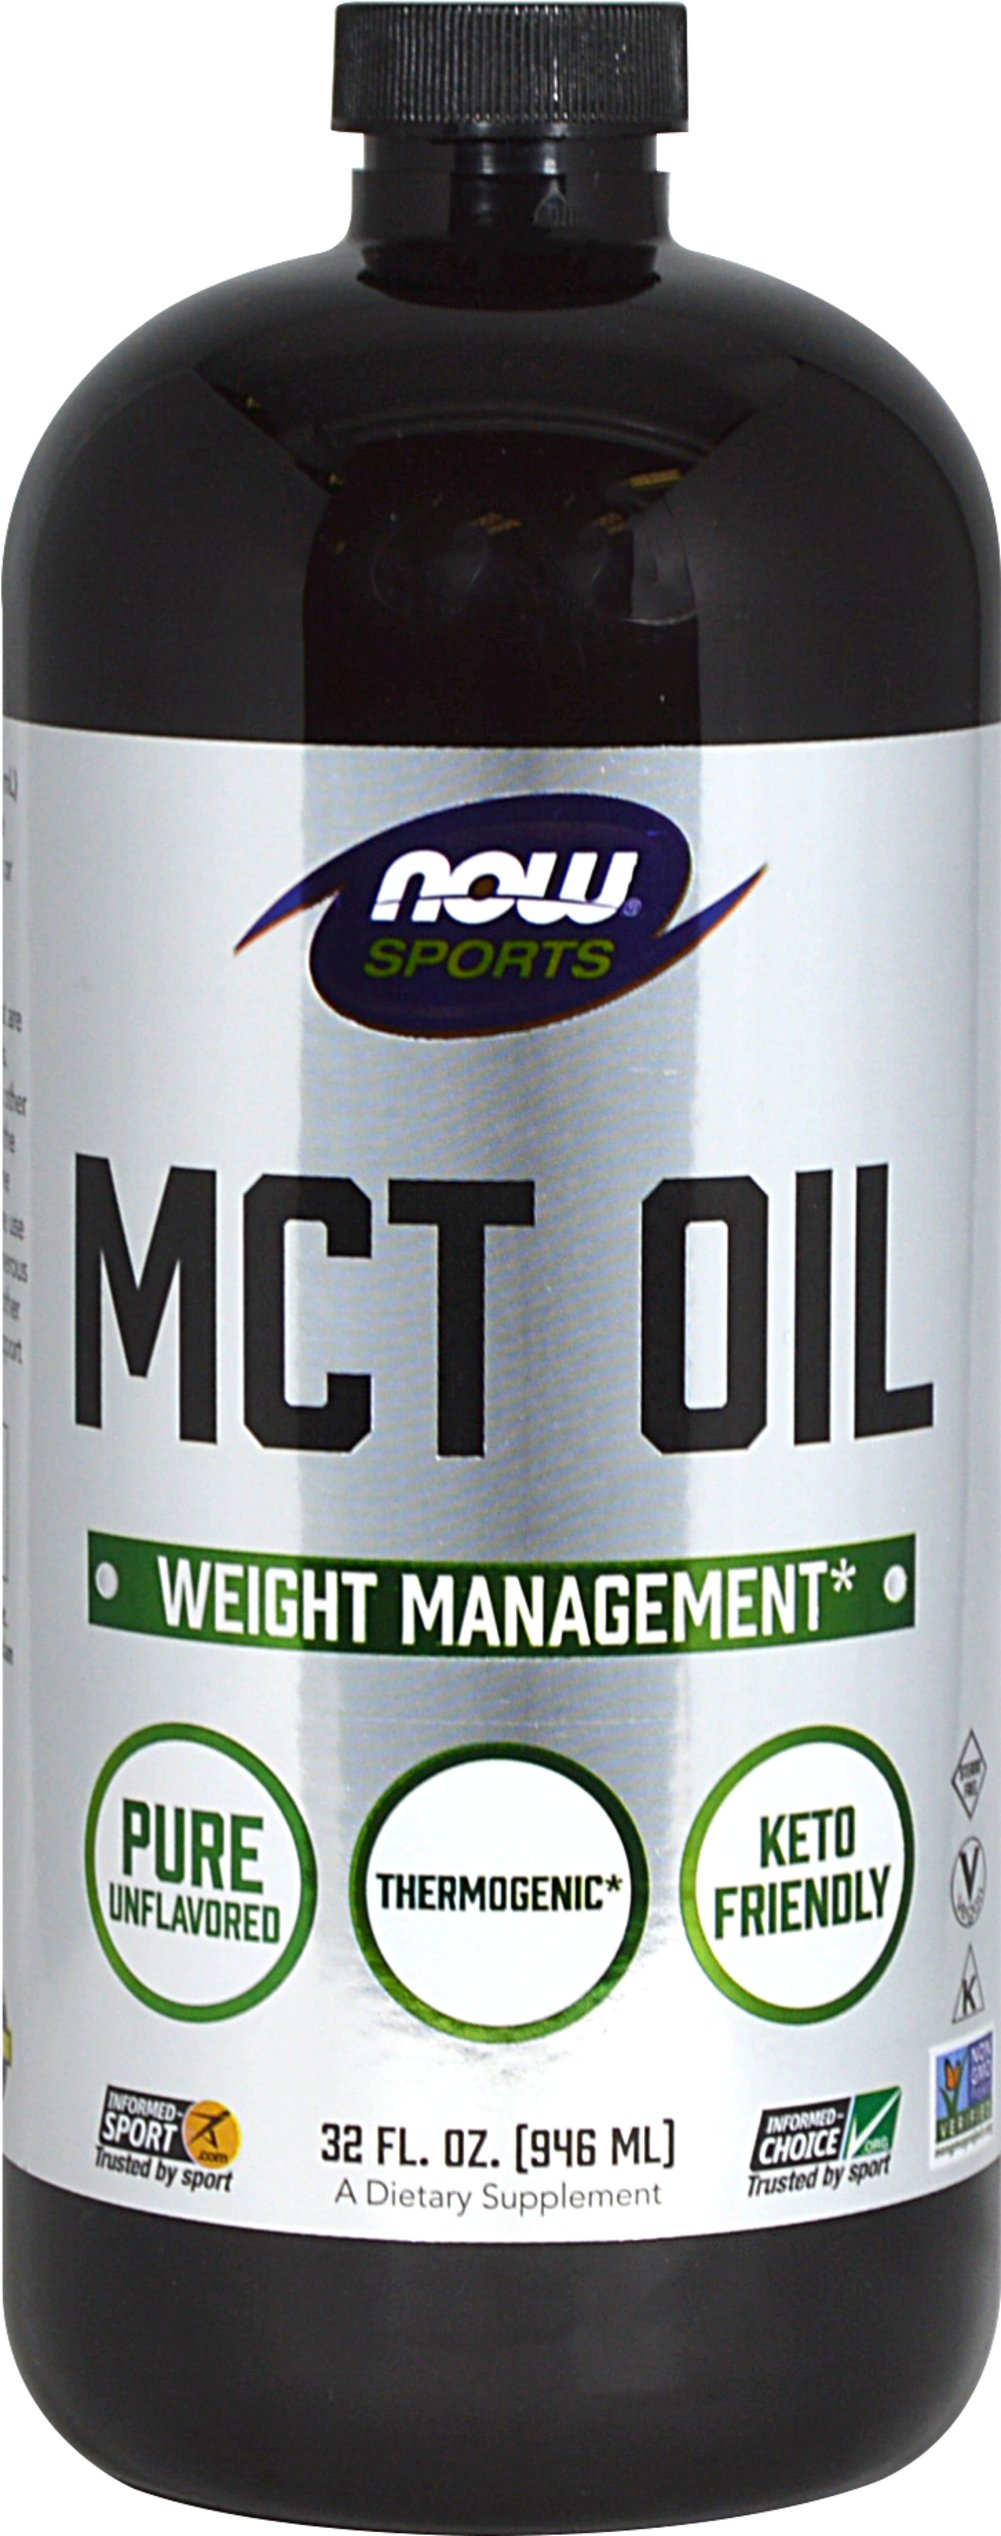 MCT Oil From the Manufacturer's Label:<br /><br />Medium Chain Triglycerides (MCT's) are fats that are naturally found in coconut and palm kernel oil.  MCT's are more easily and rapidly digested than other types of fats, as they require lower amounts of enzymes and bile acids for intestinal absorption.<br /><br />Manufactured by NOW® Foods. 32 fl oz Liquid  $19.99